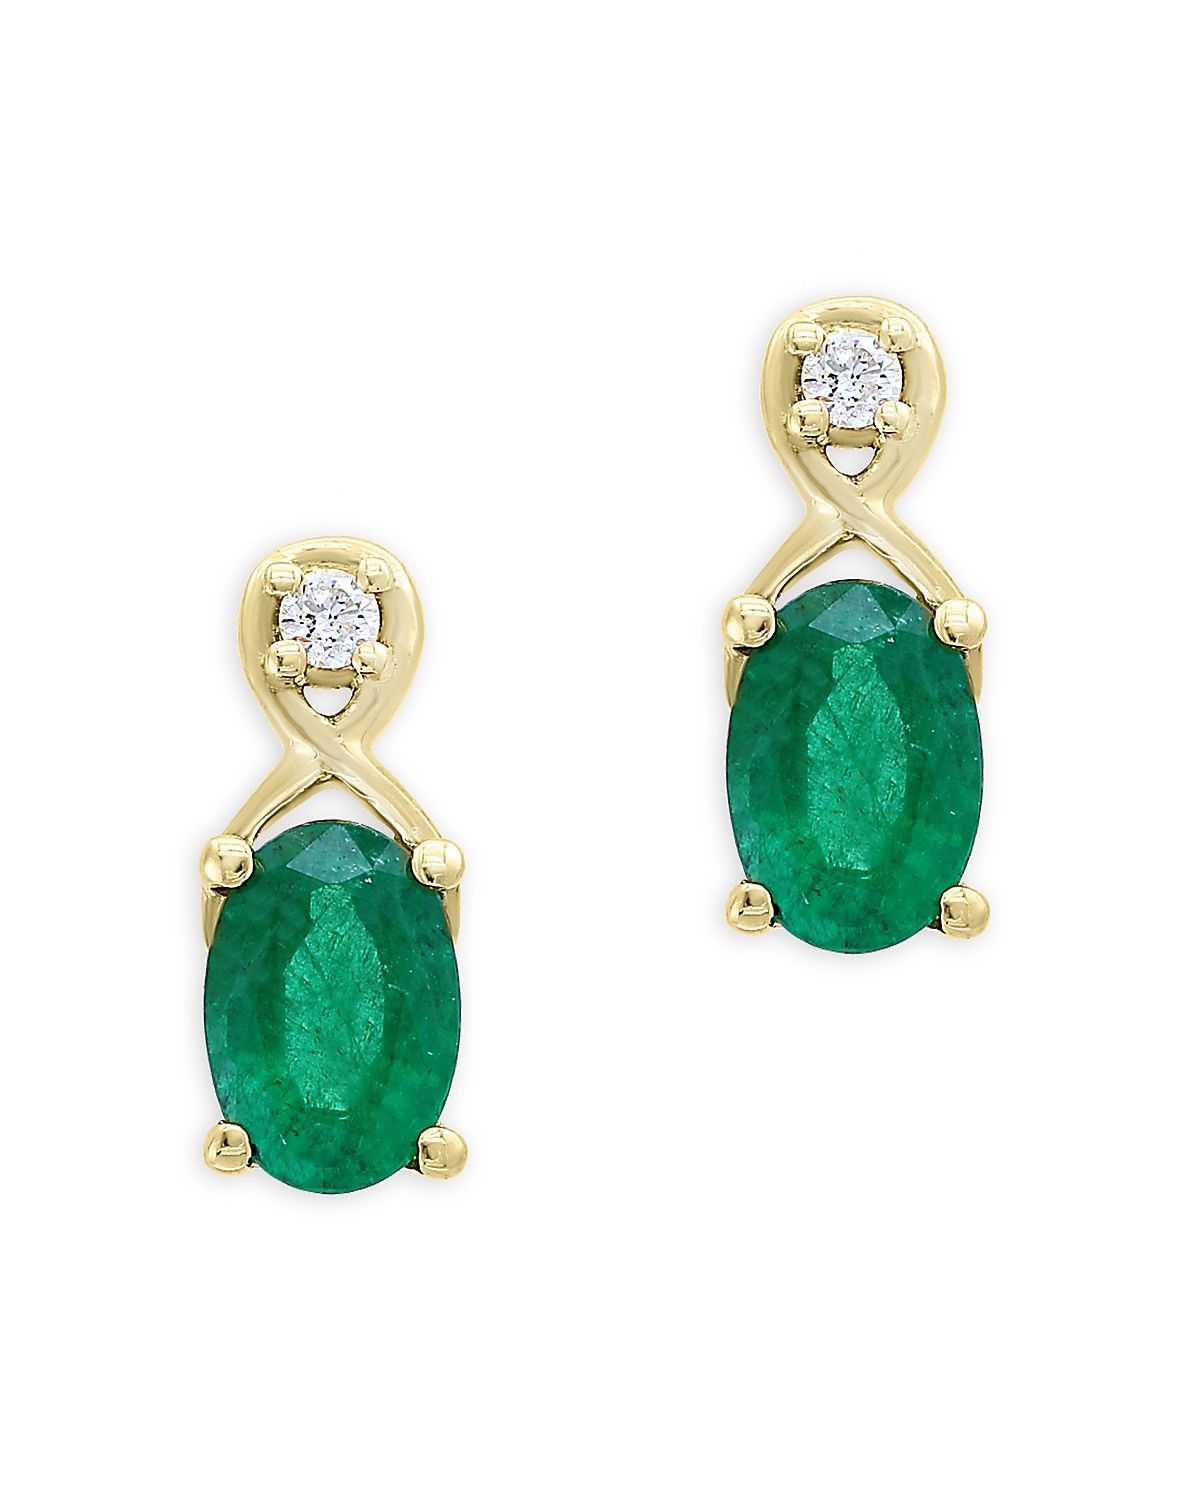 173Jb He went to Jared Pinterest Drop earrings Emeralds and